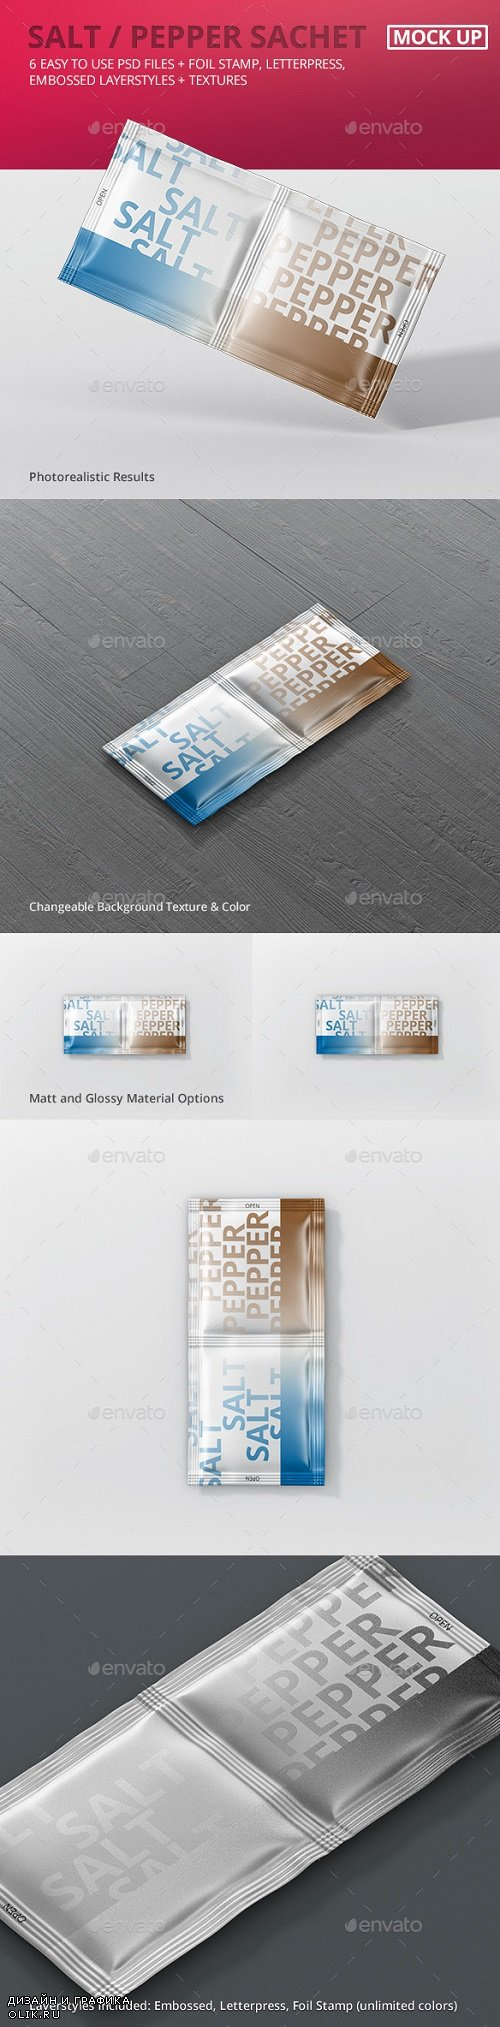 Salt / Pepper Sachet Mockup - 20633968